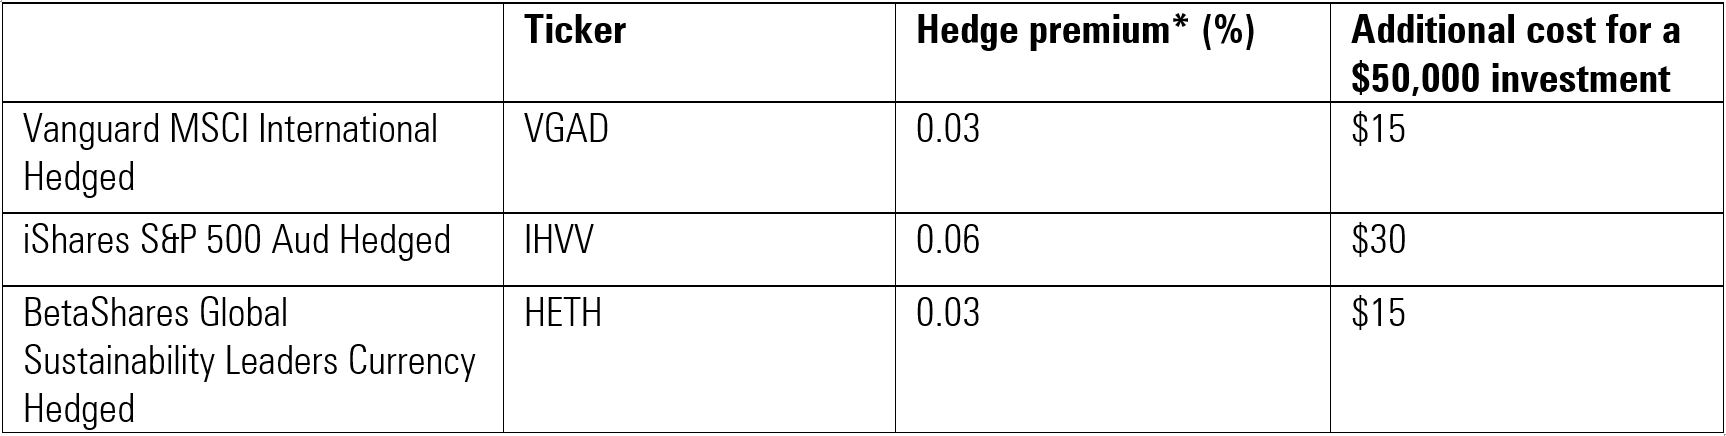 ETF currency hedging premiums